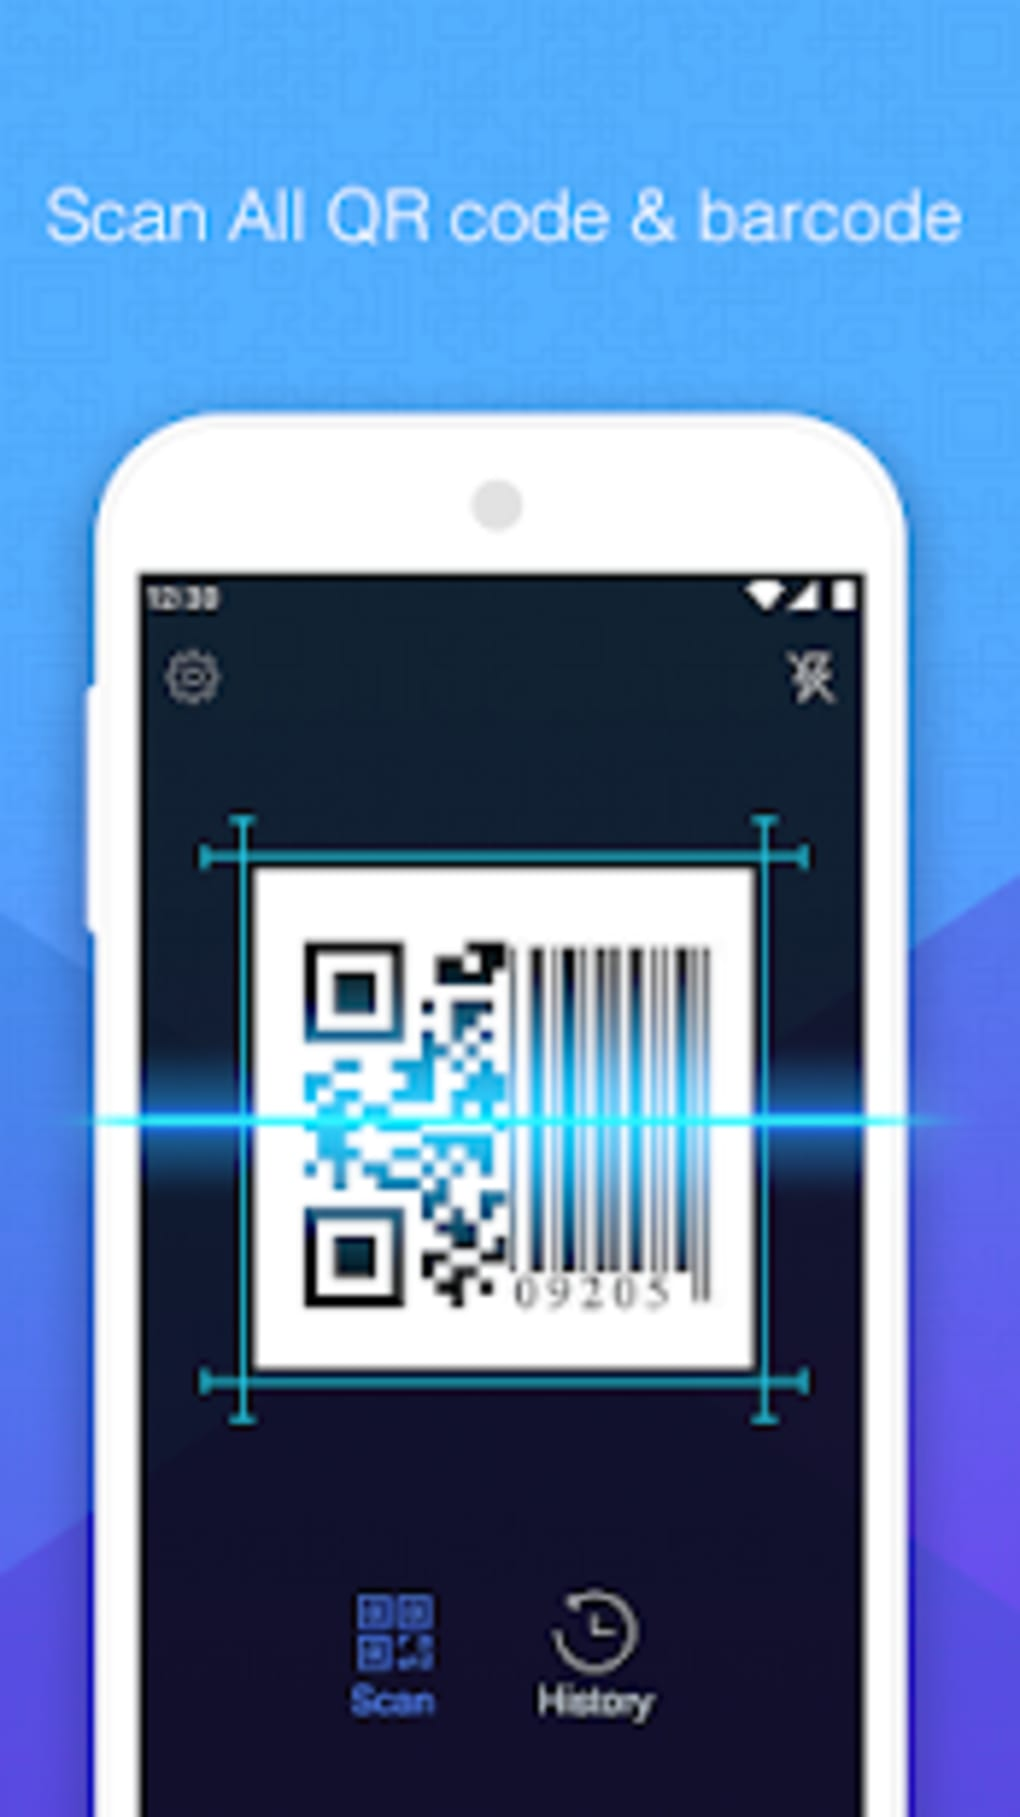 Smart Scan QR Barcode Scanner Free for Android - Download